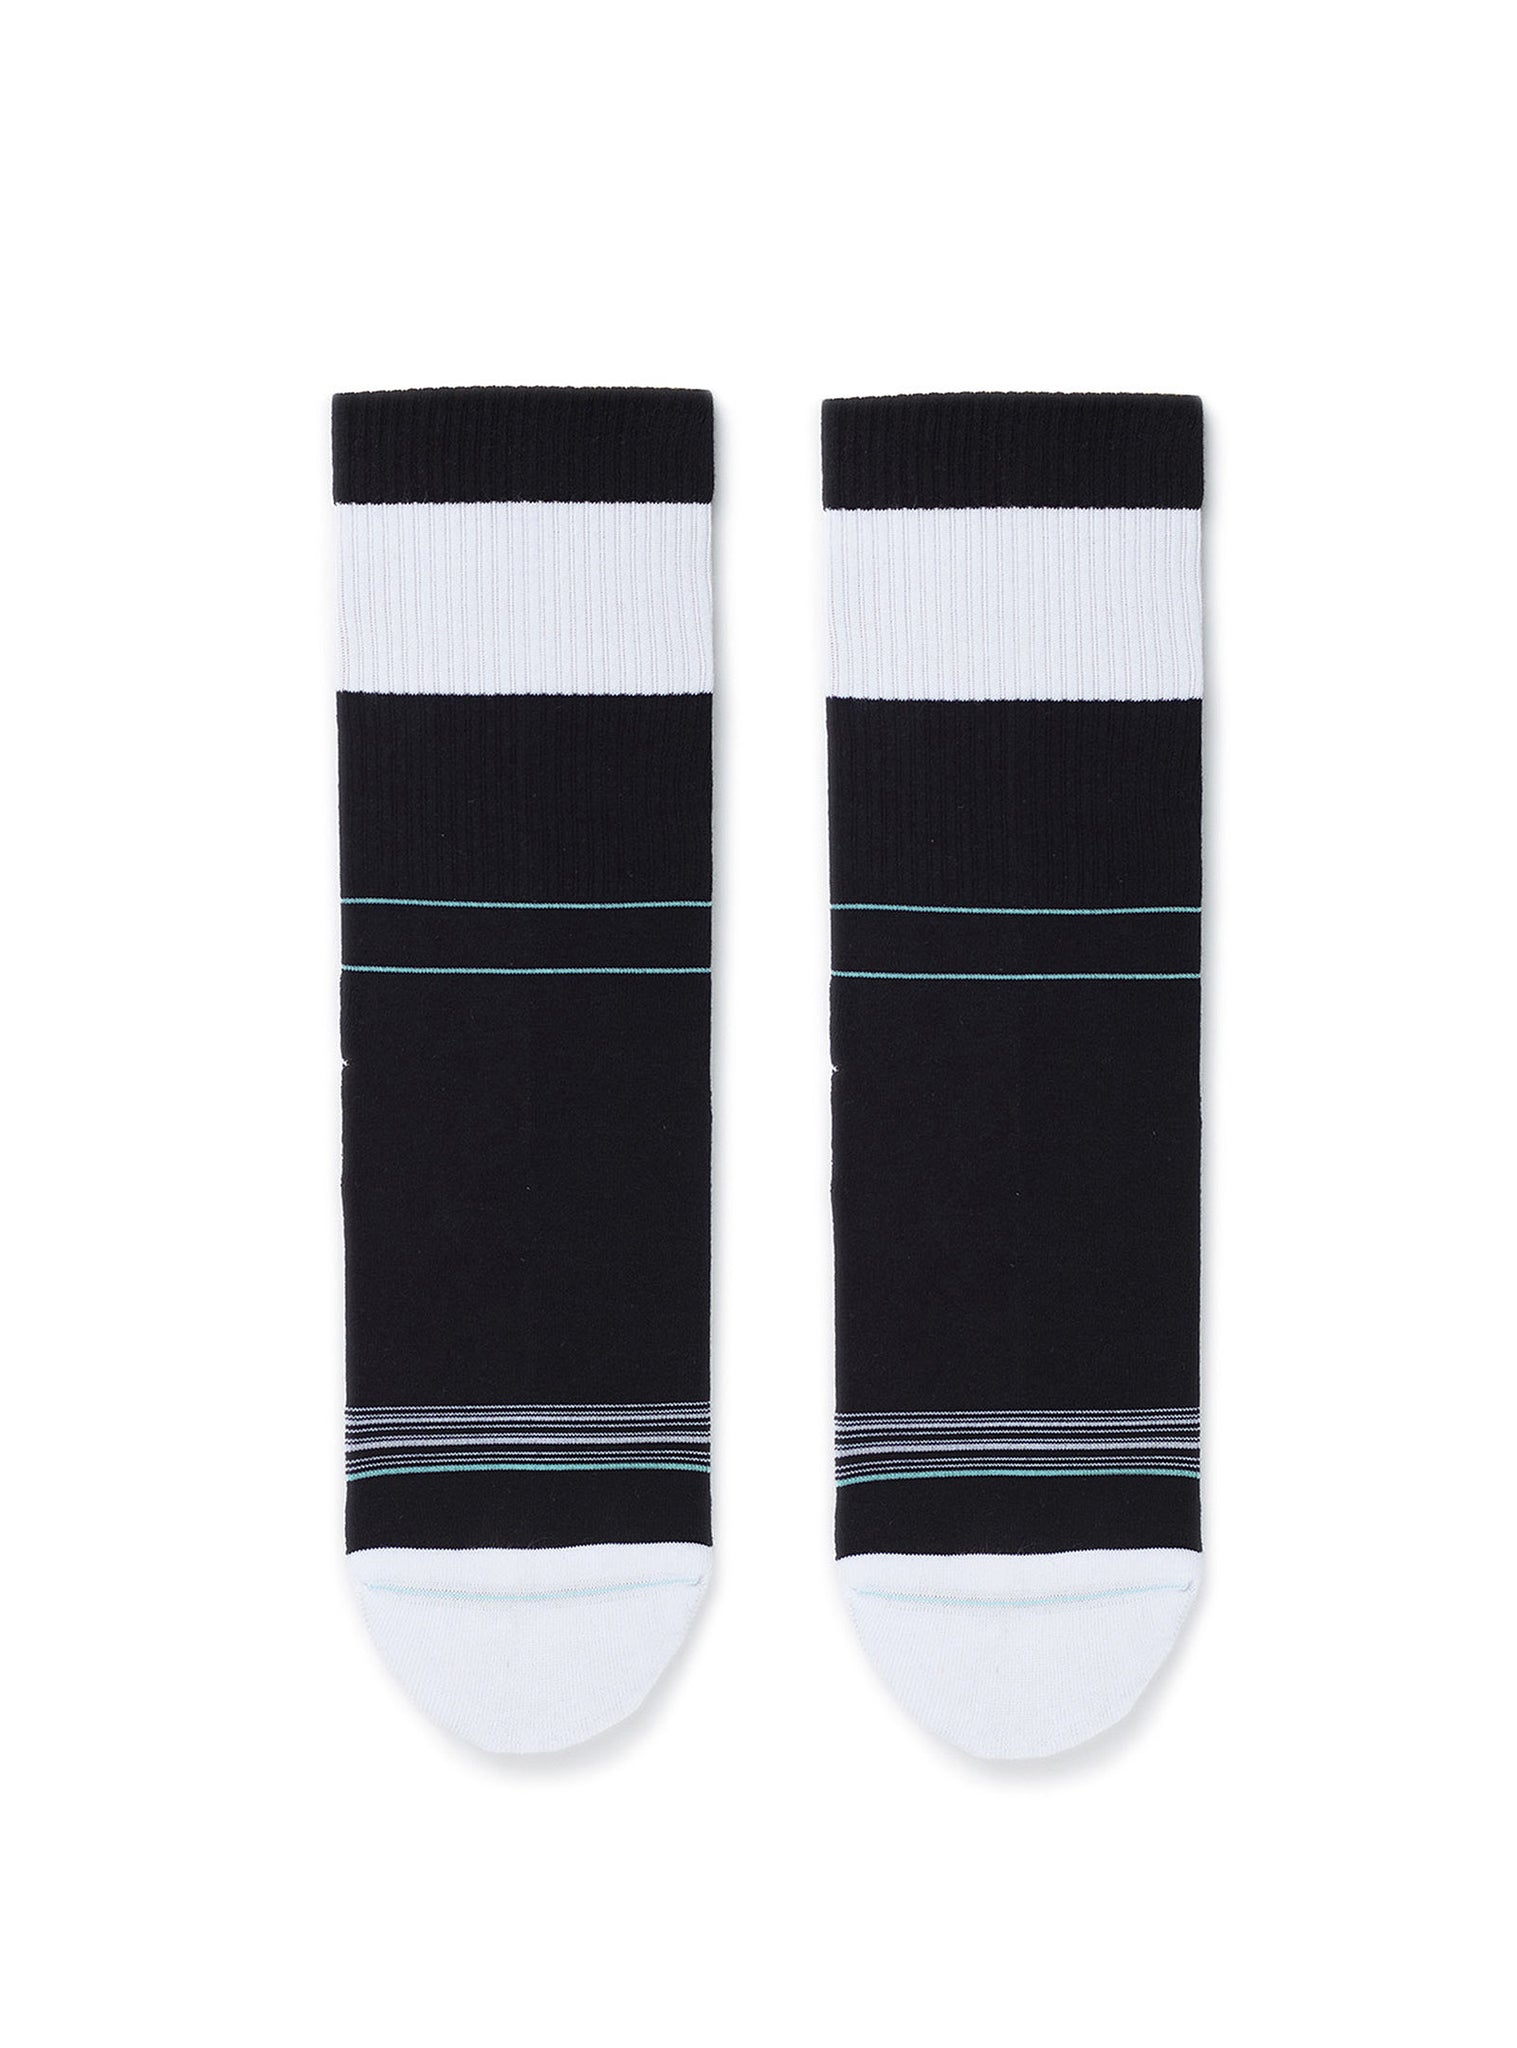 Boneless Socks Black